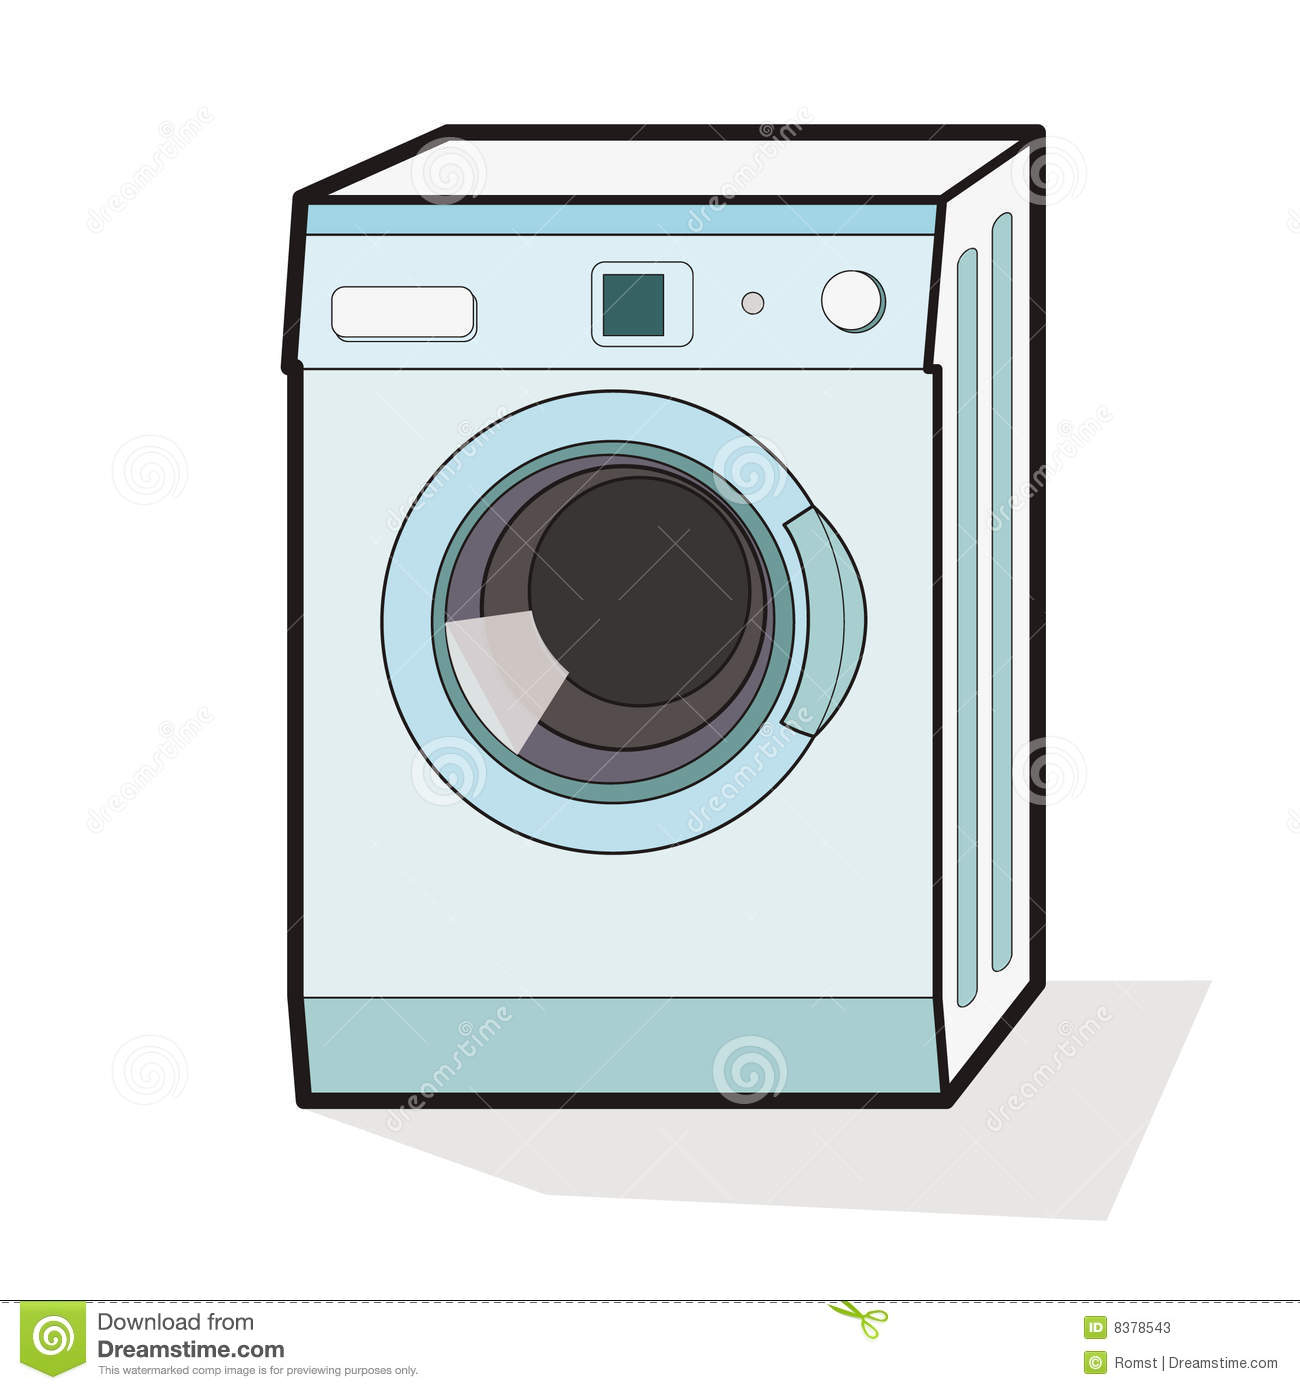 Washing machine clipart images vector free download Broken Washing Machine Clipart - Clipart Kid vector free download